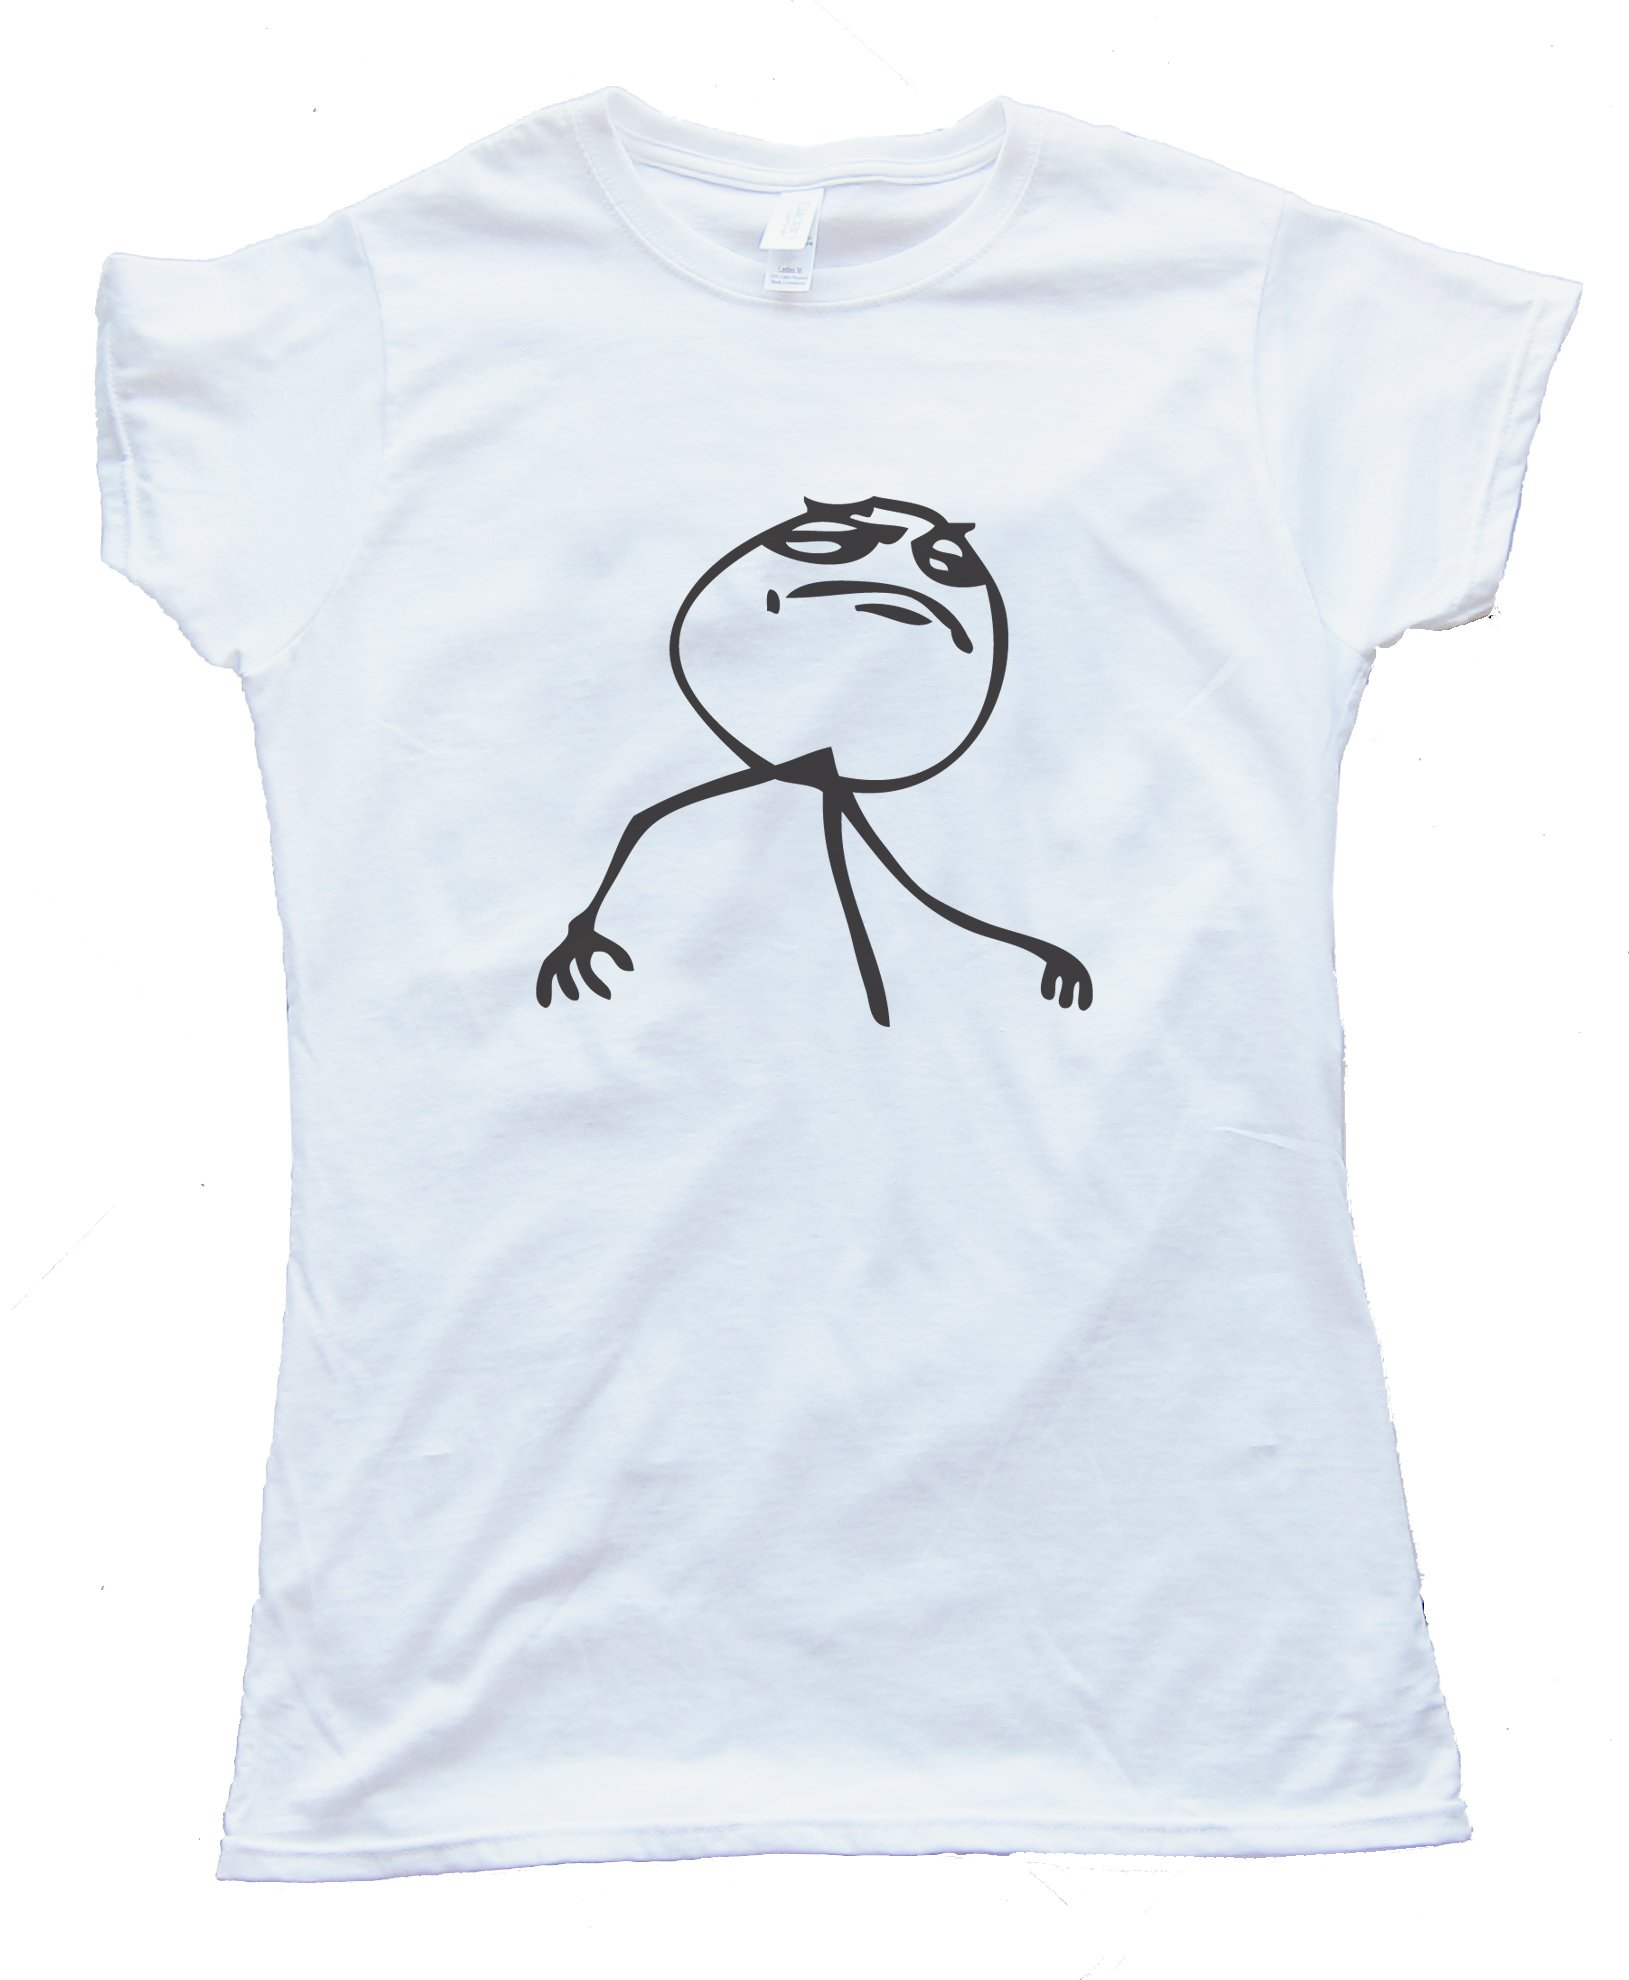 Female F$%&Amp; Yeah Rage Comic Face Tee Shirt